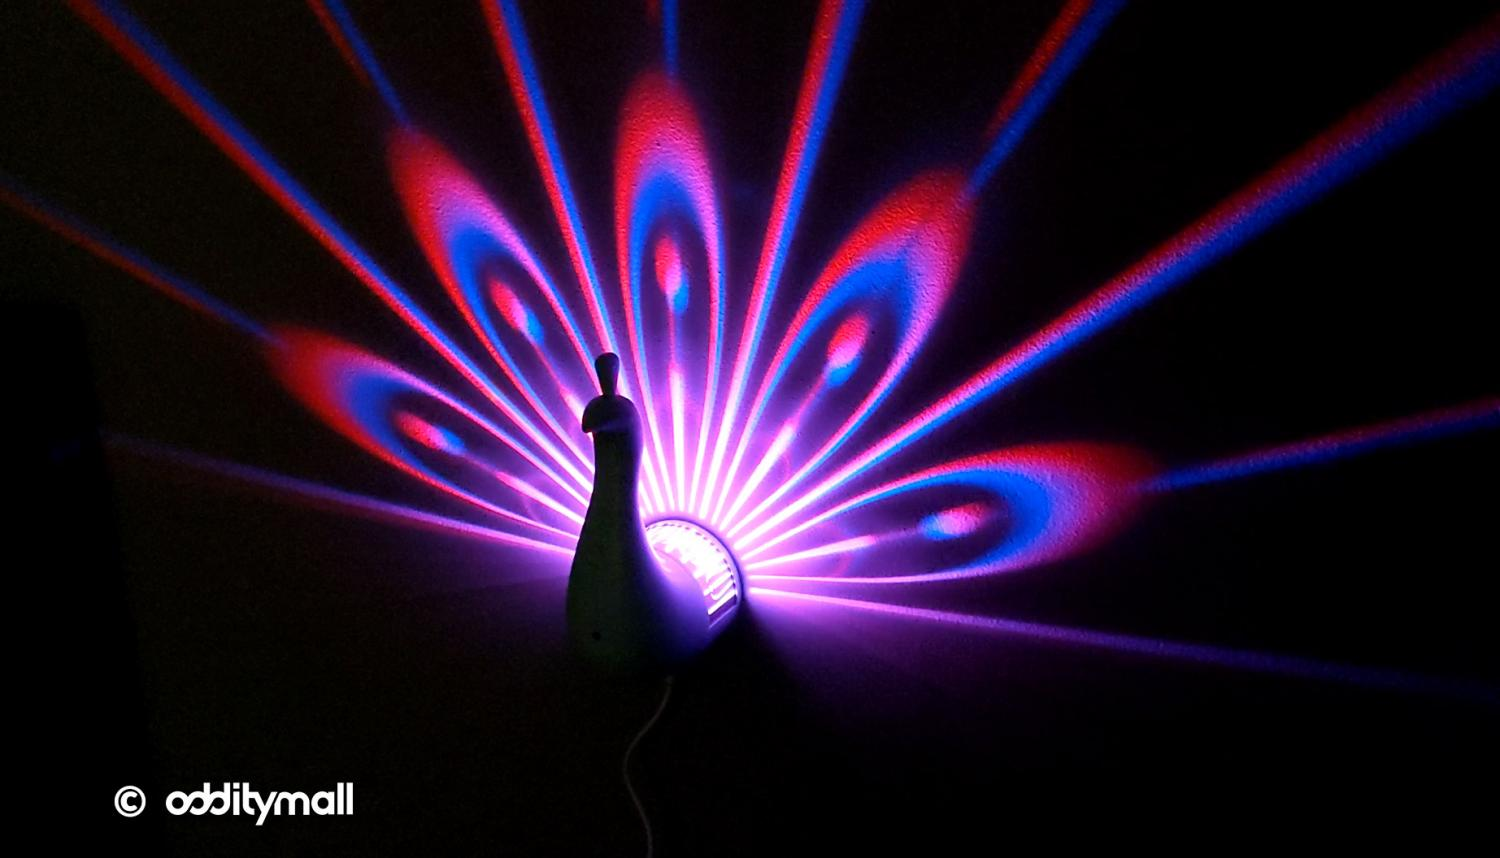 LED Peacock Night-Light Projects Its Colorful Plumage Onto Your Wall